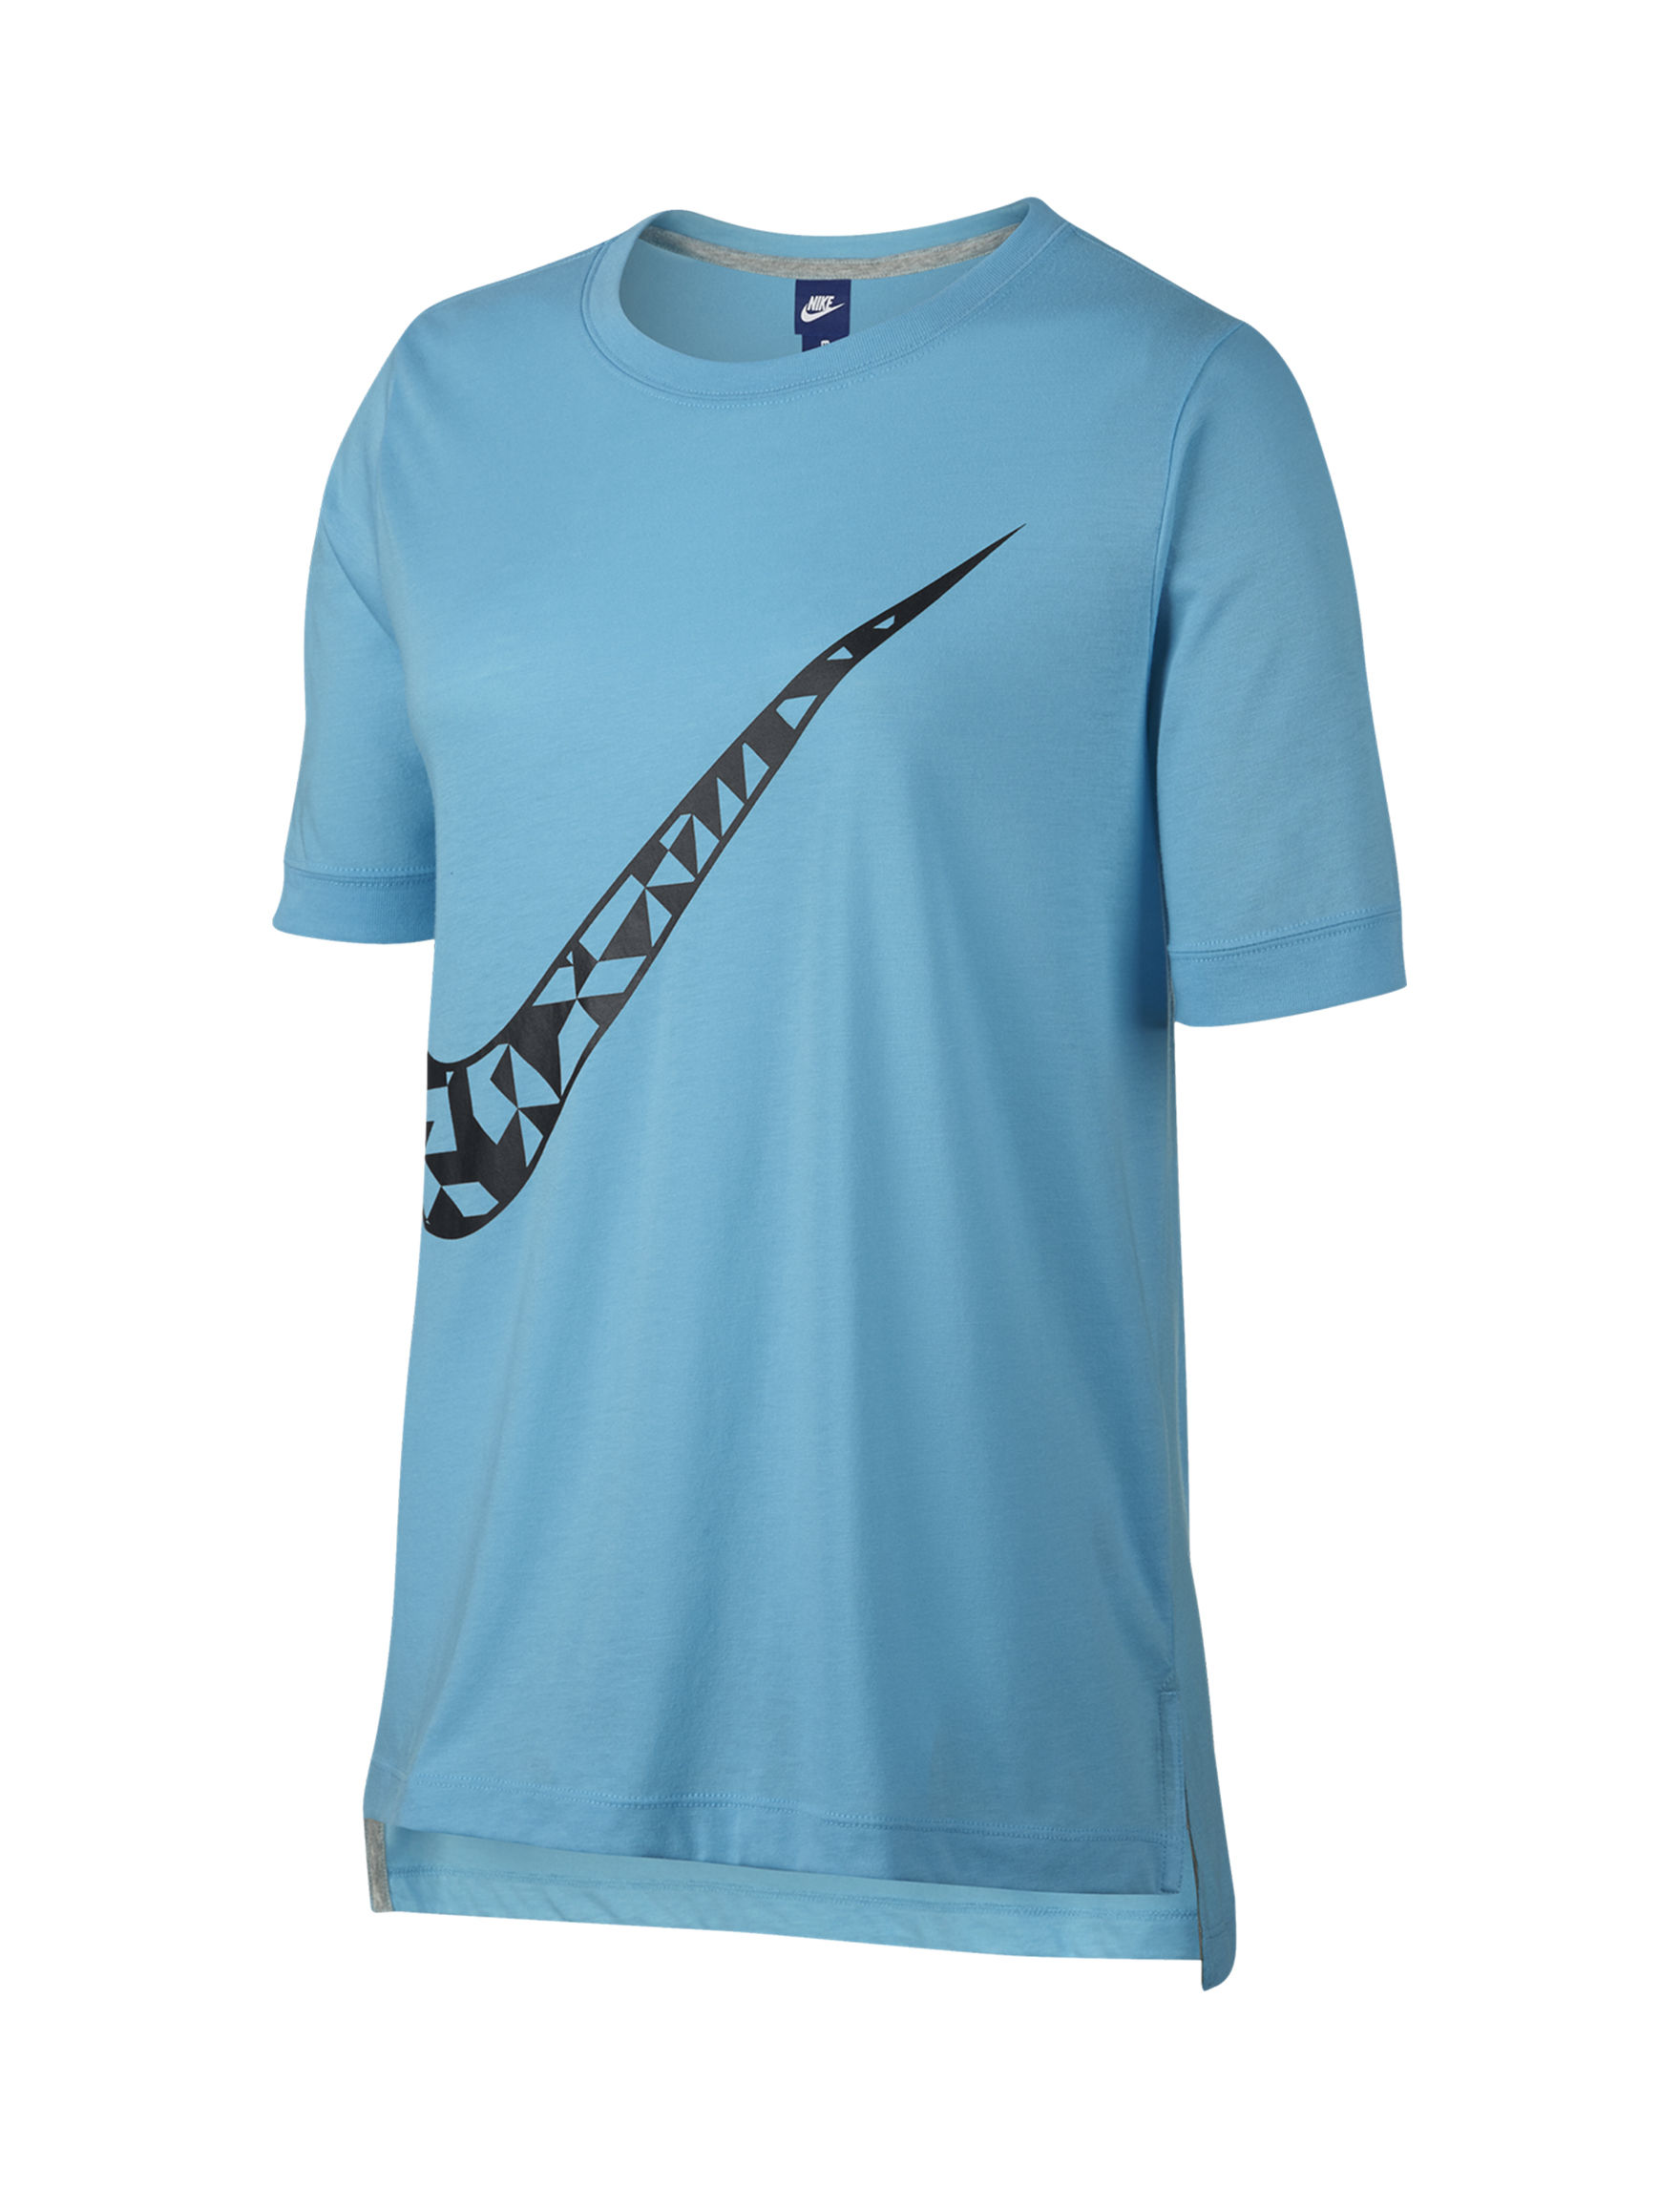 Nike Blue Combo Tees & Tanks